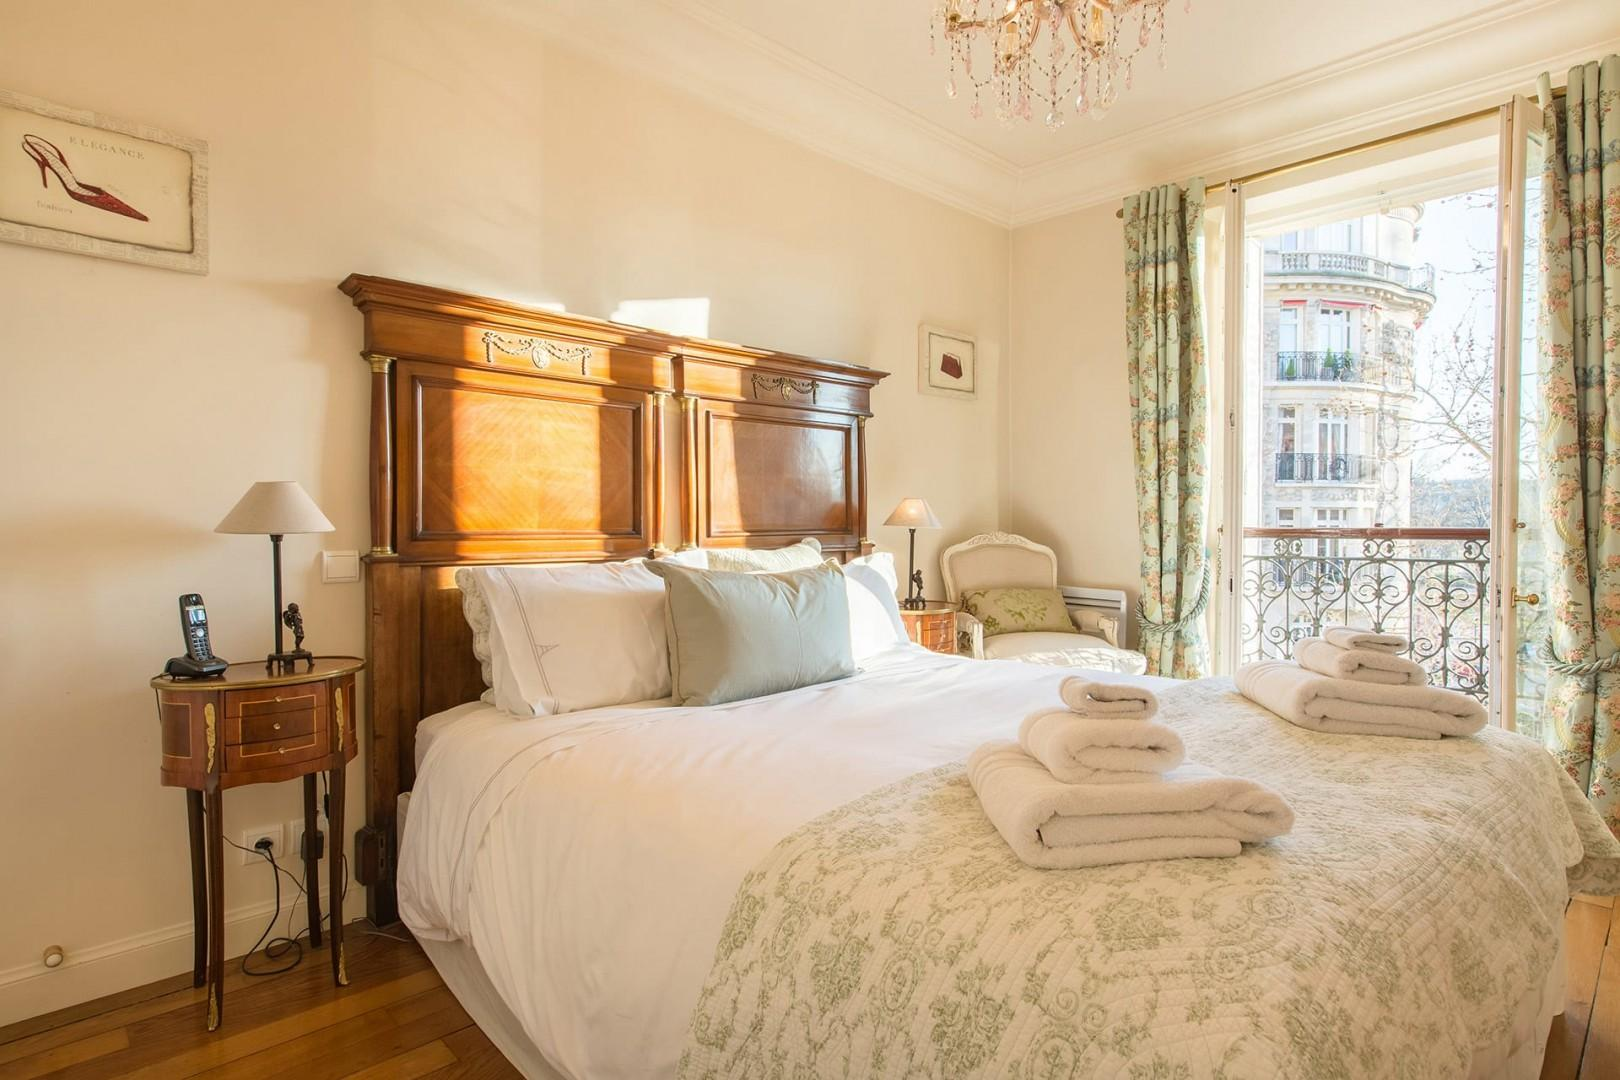 Wake up to the Paris sun in beautiful bedroom 1.